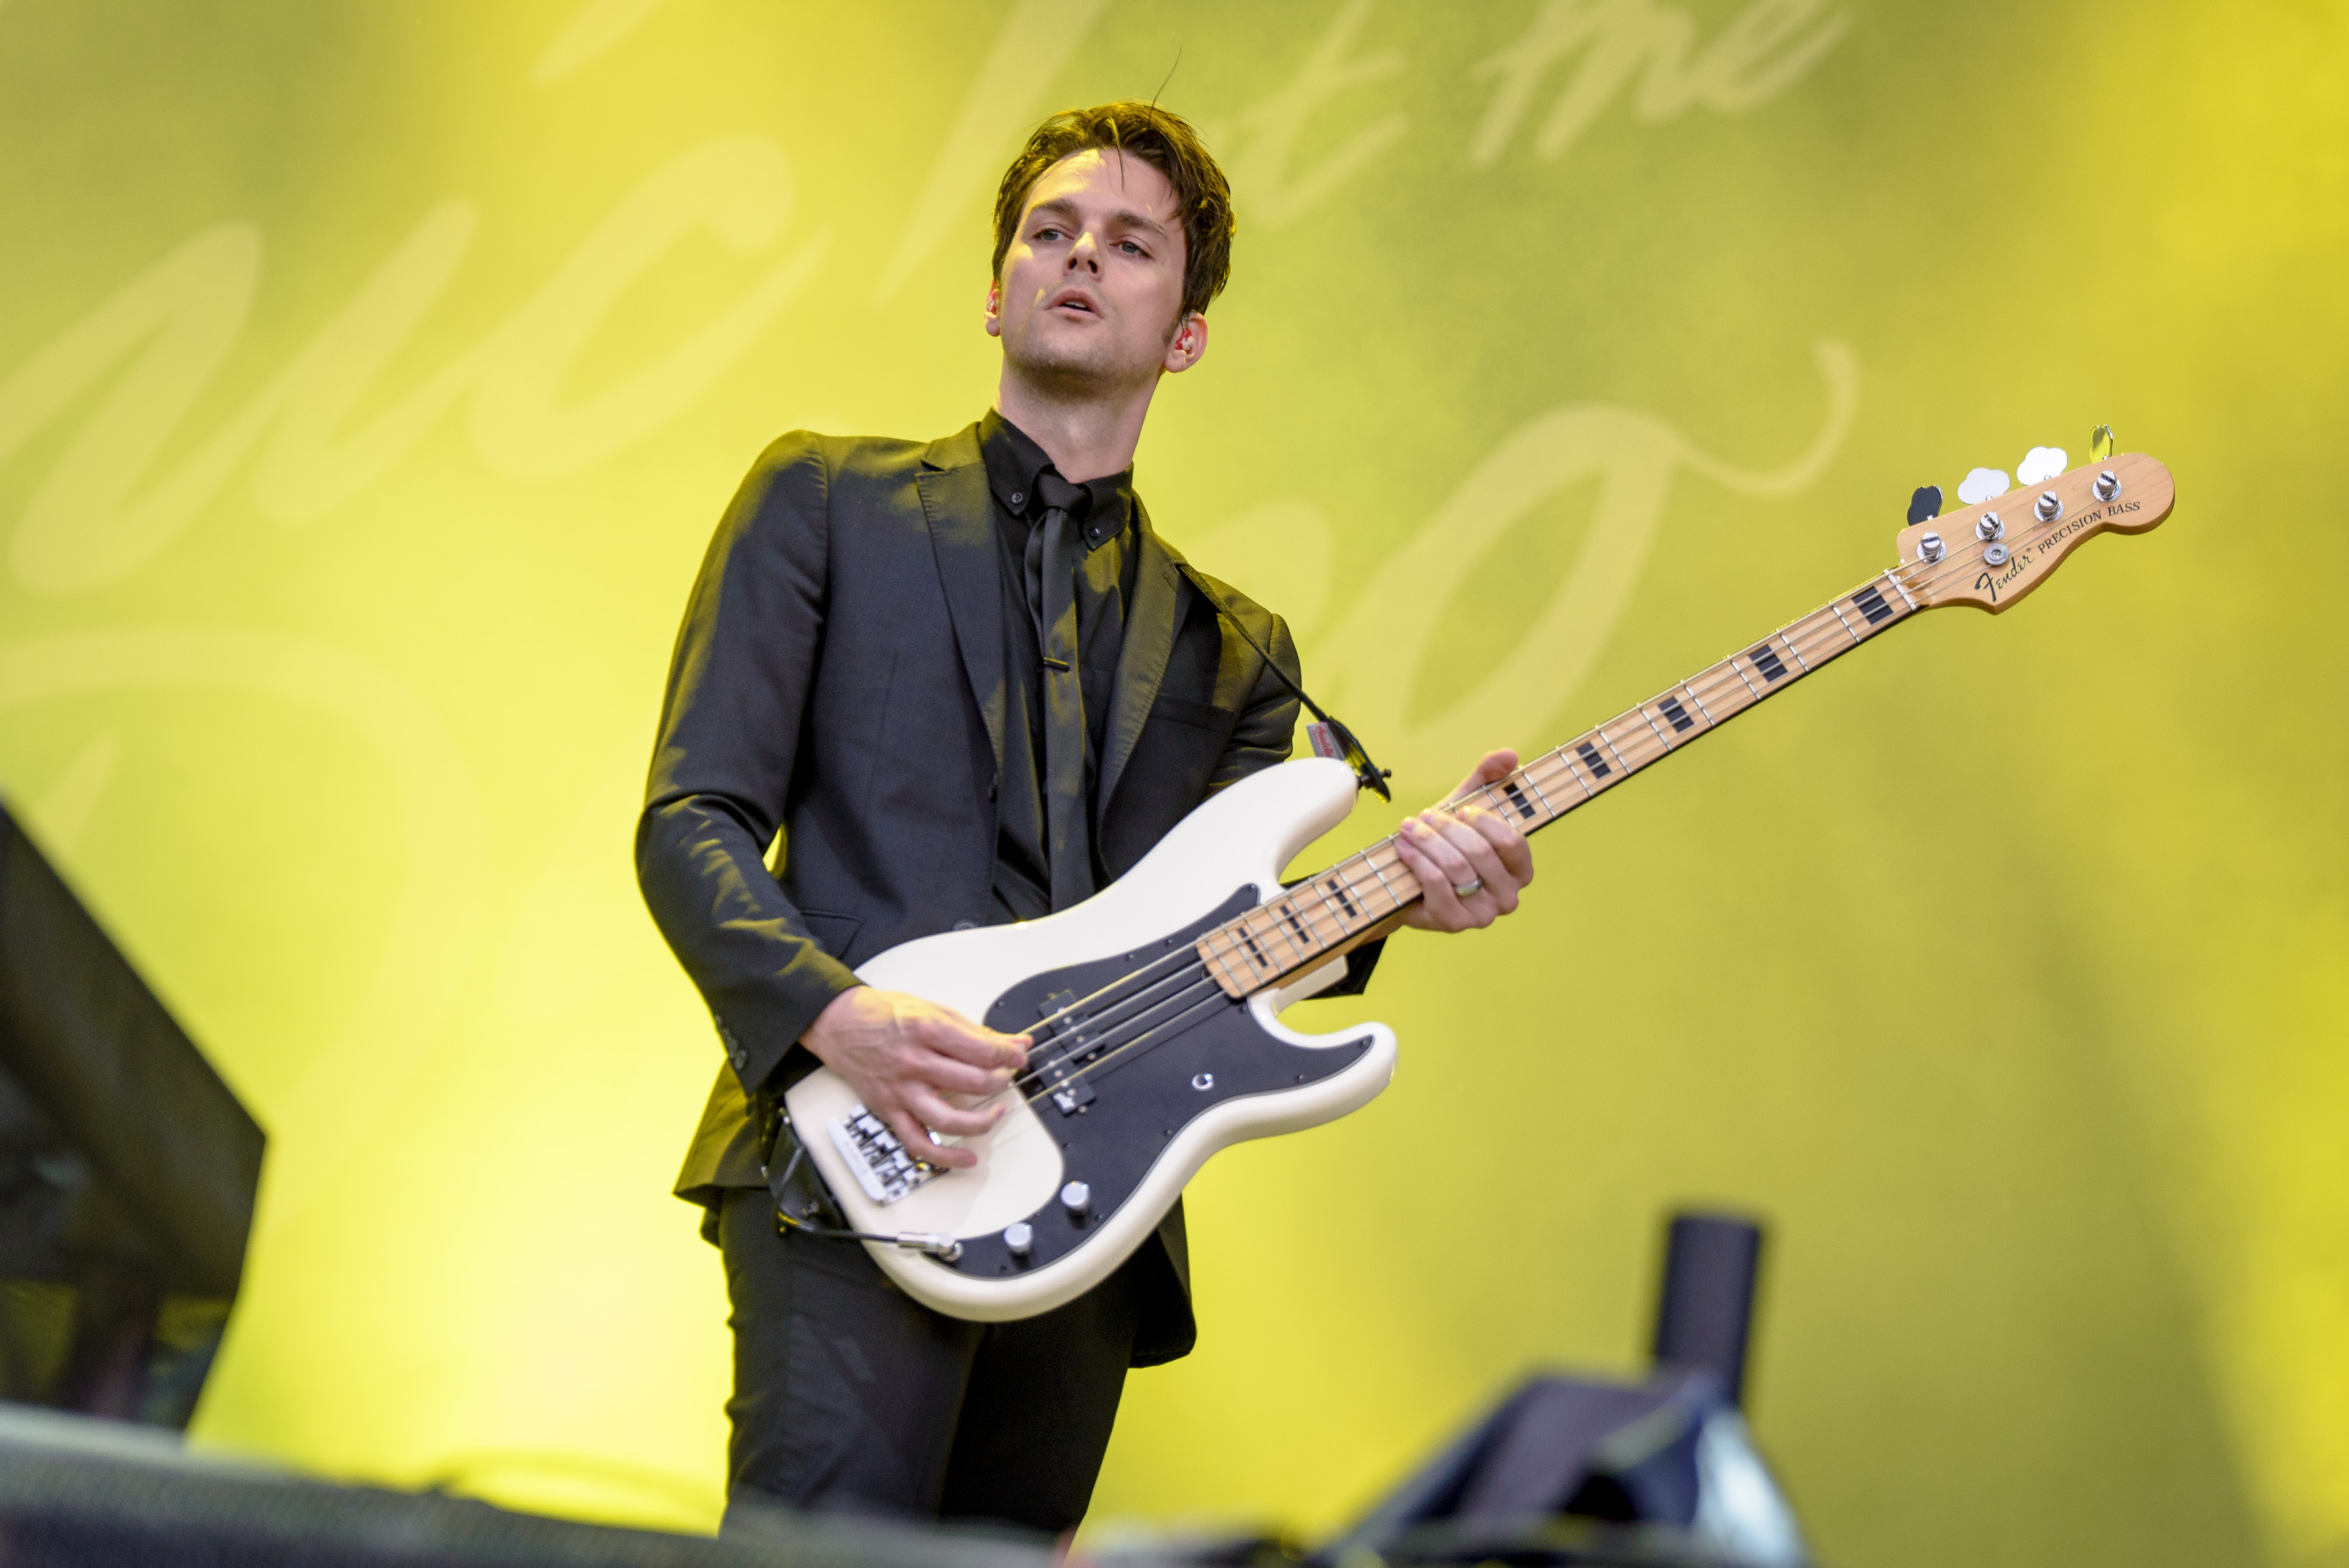 Dallon Weekes - Wikipedia